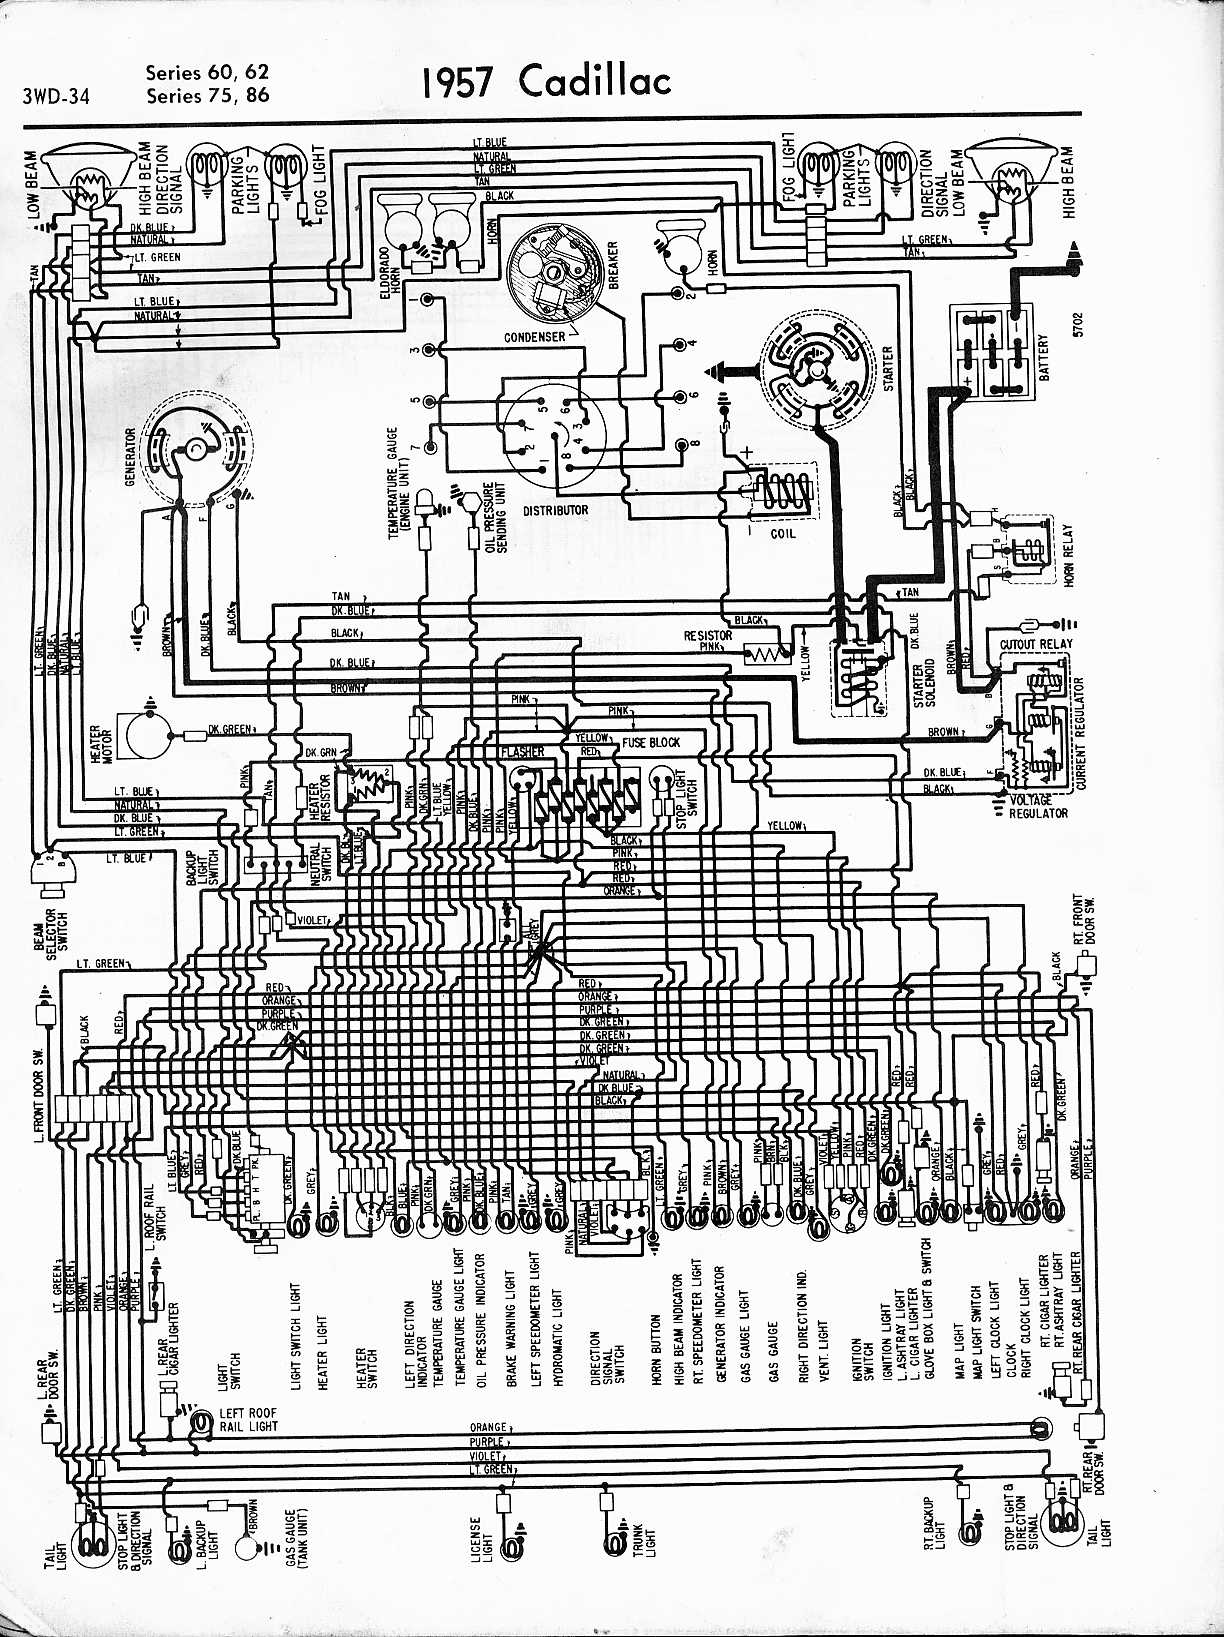 hight resolution of rover 75 rear light wiring diagram wiring library single light switch wiring diagram 1957 series 60